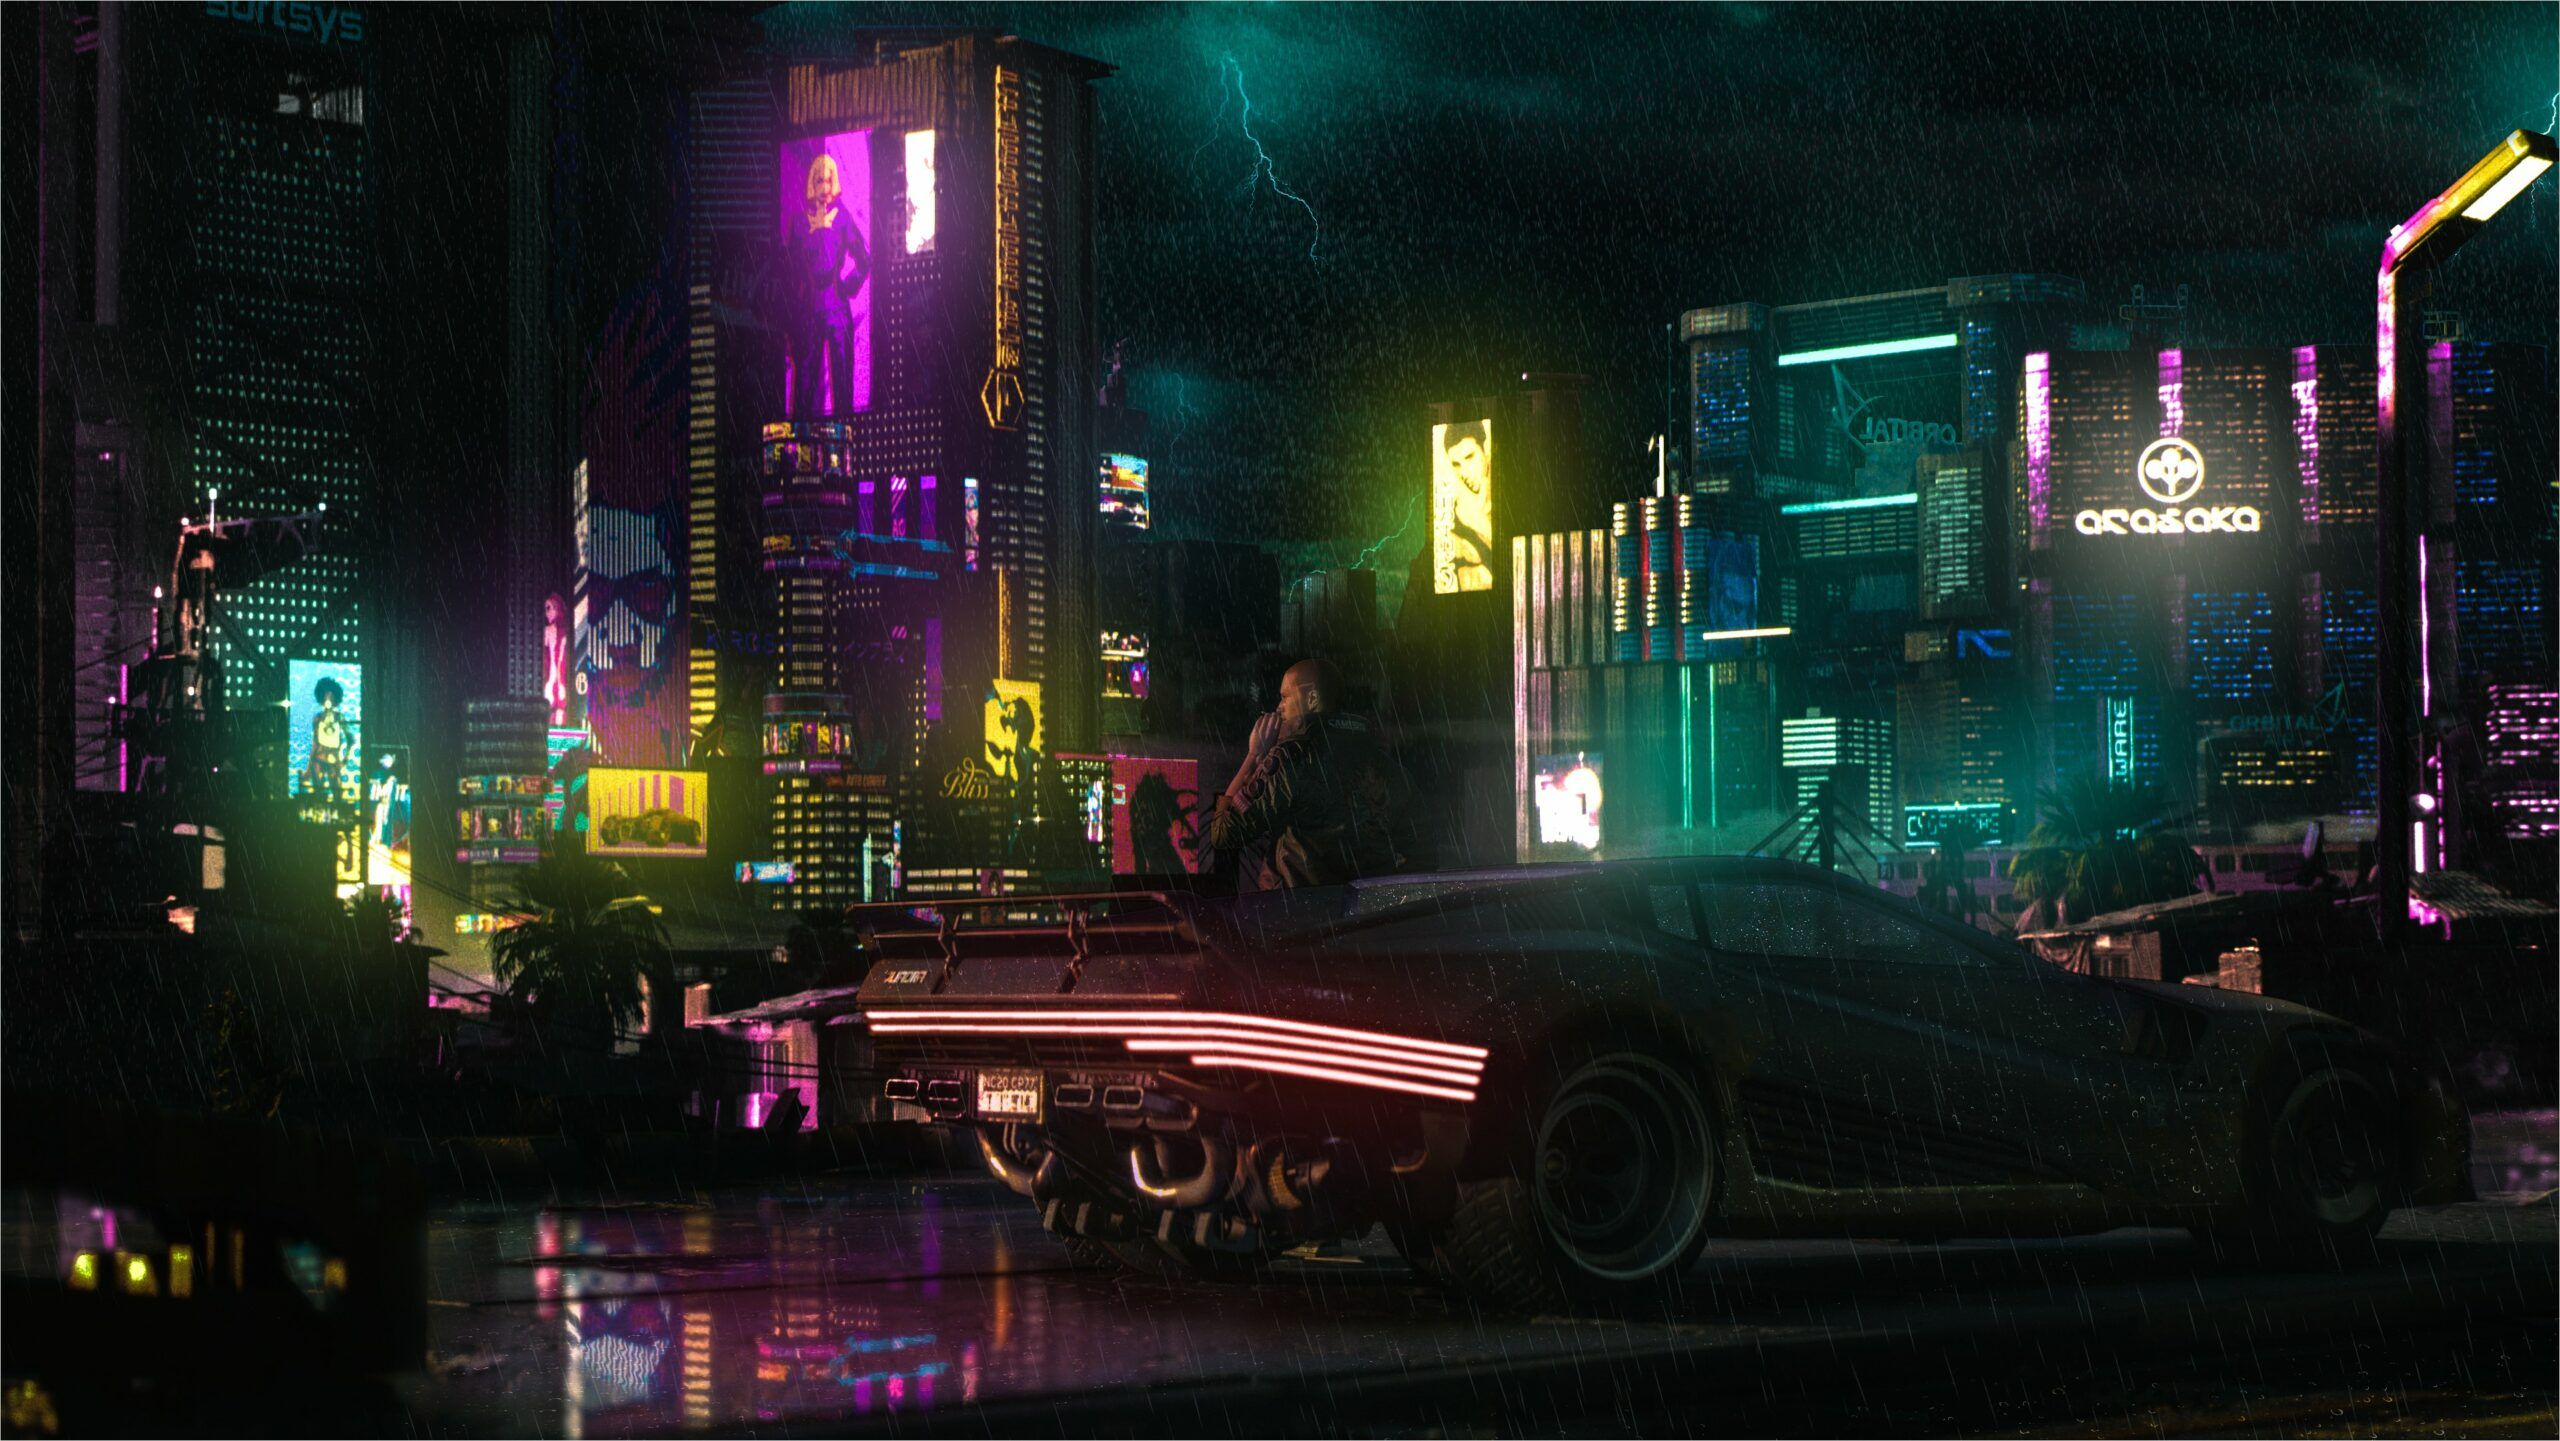 4k Wallpaper Cyber Punk In 2020 Background Images Wallpapers Wallpaper Rain Wallpapers